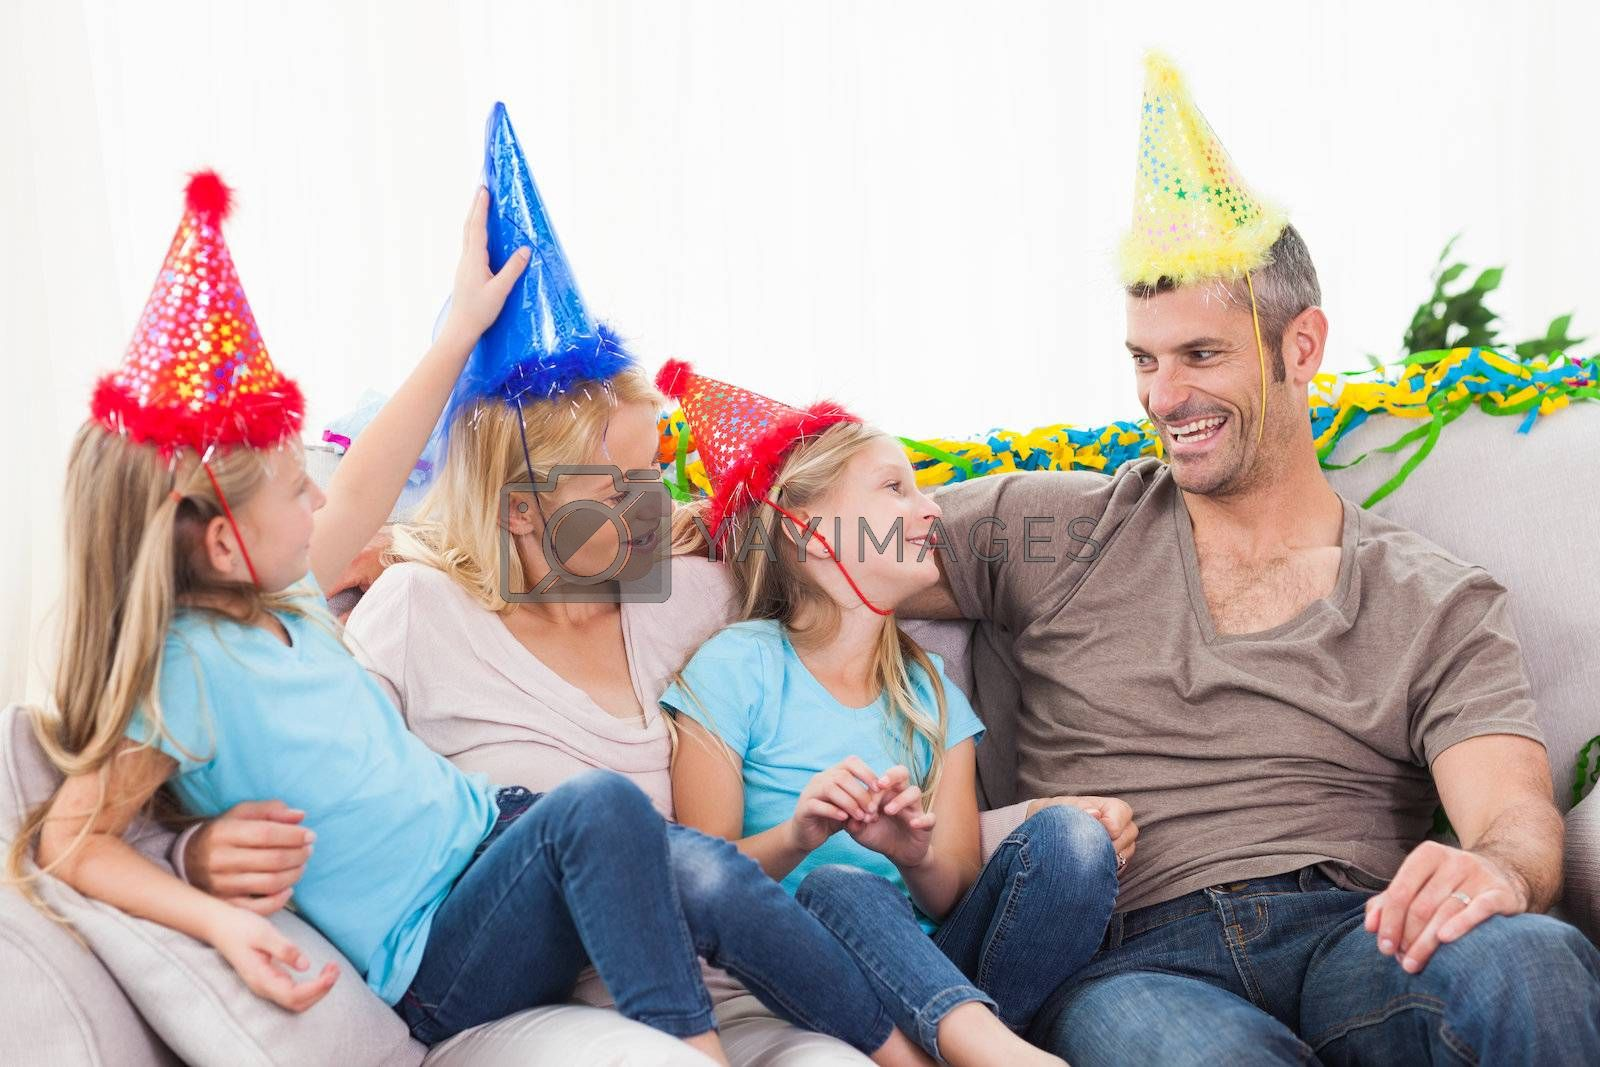 Family celebrating twins birthday sitting on a couch in the living room